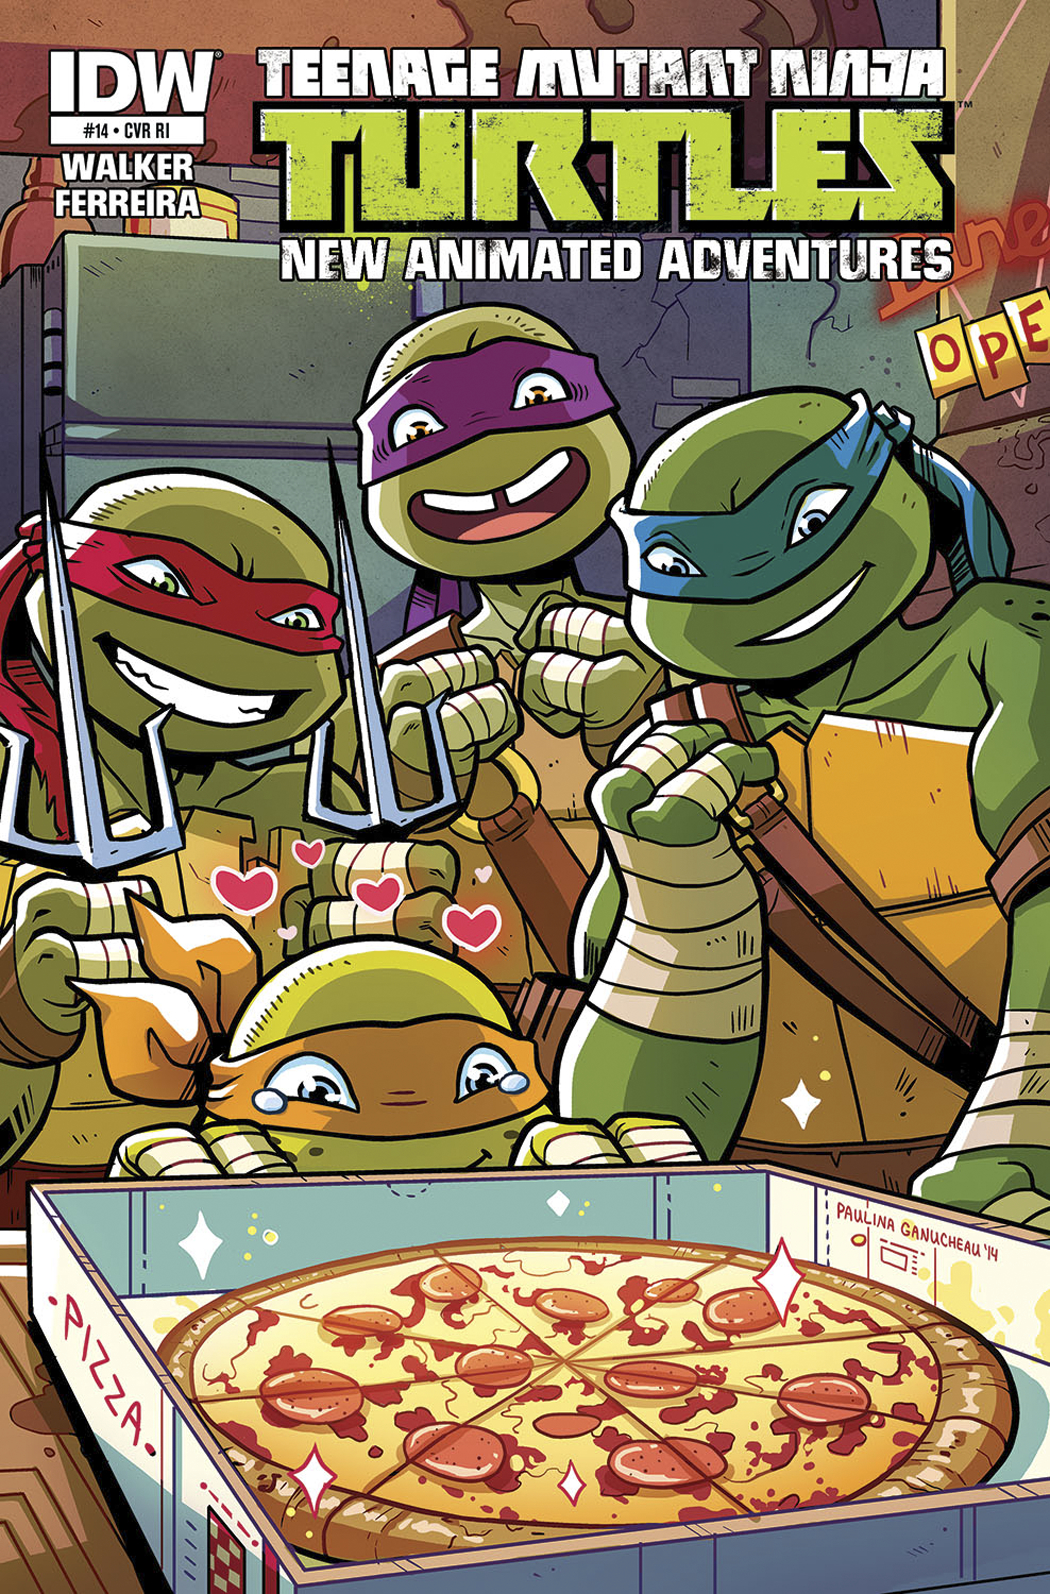 TMNT NEW ANIMATED ADVENTURES #14